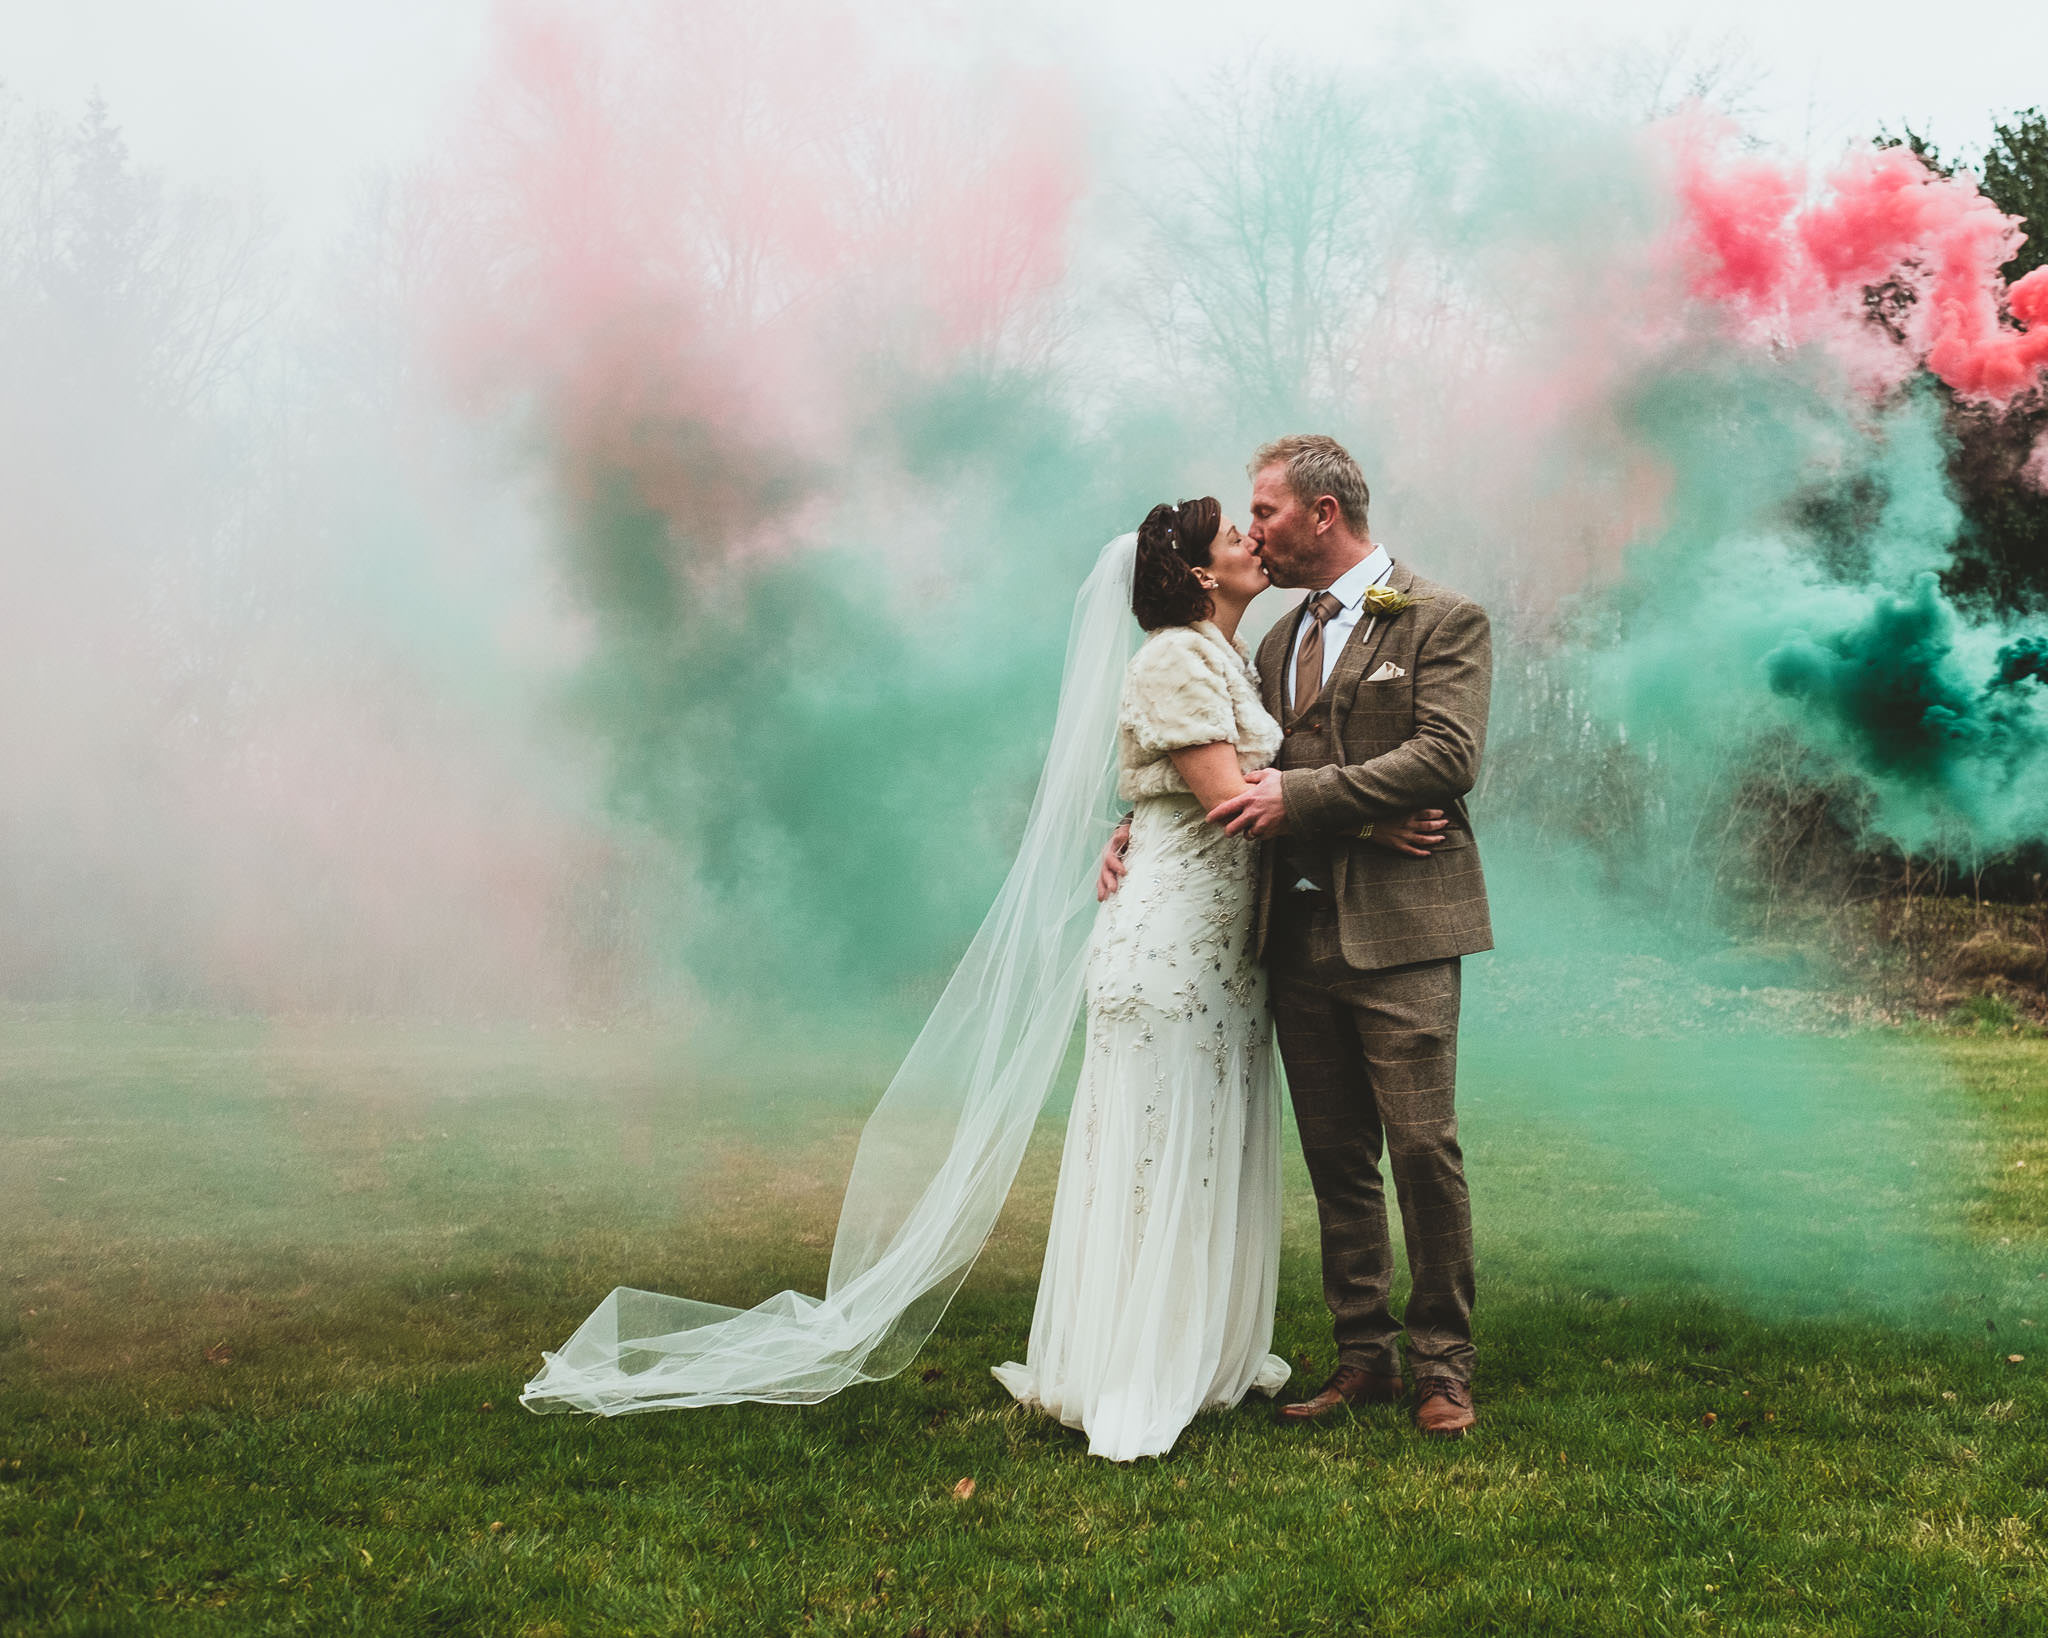 Bride and groom kiss while clouds of coloured smoke drift behind